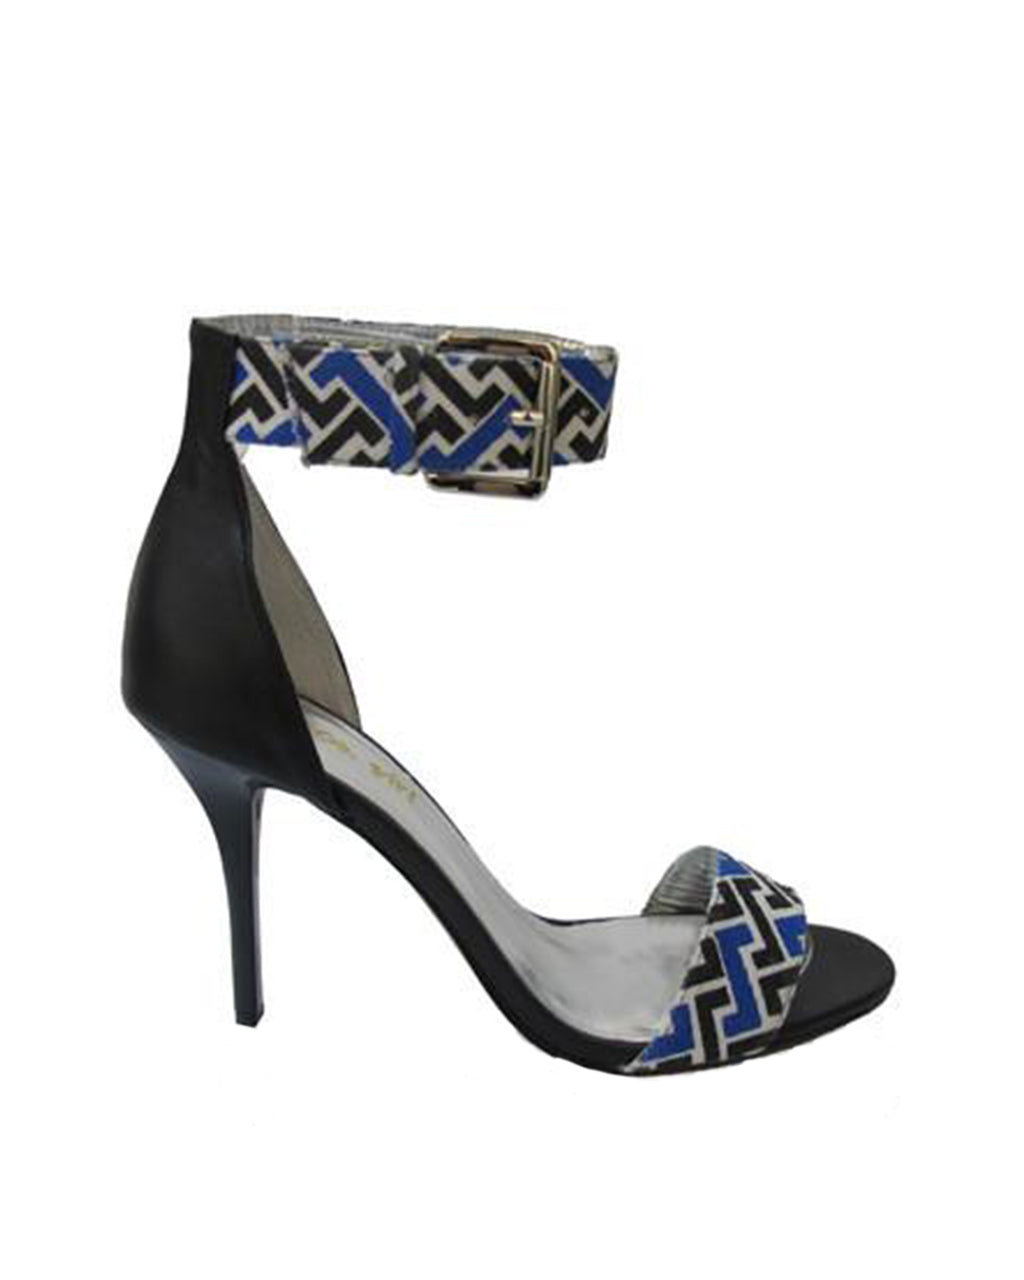 Izoa Girl Madison Square Heels Blue